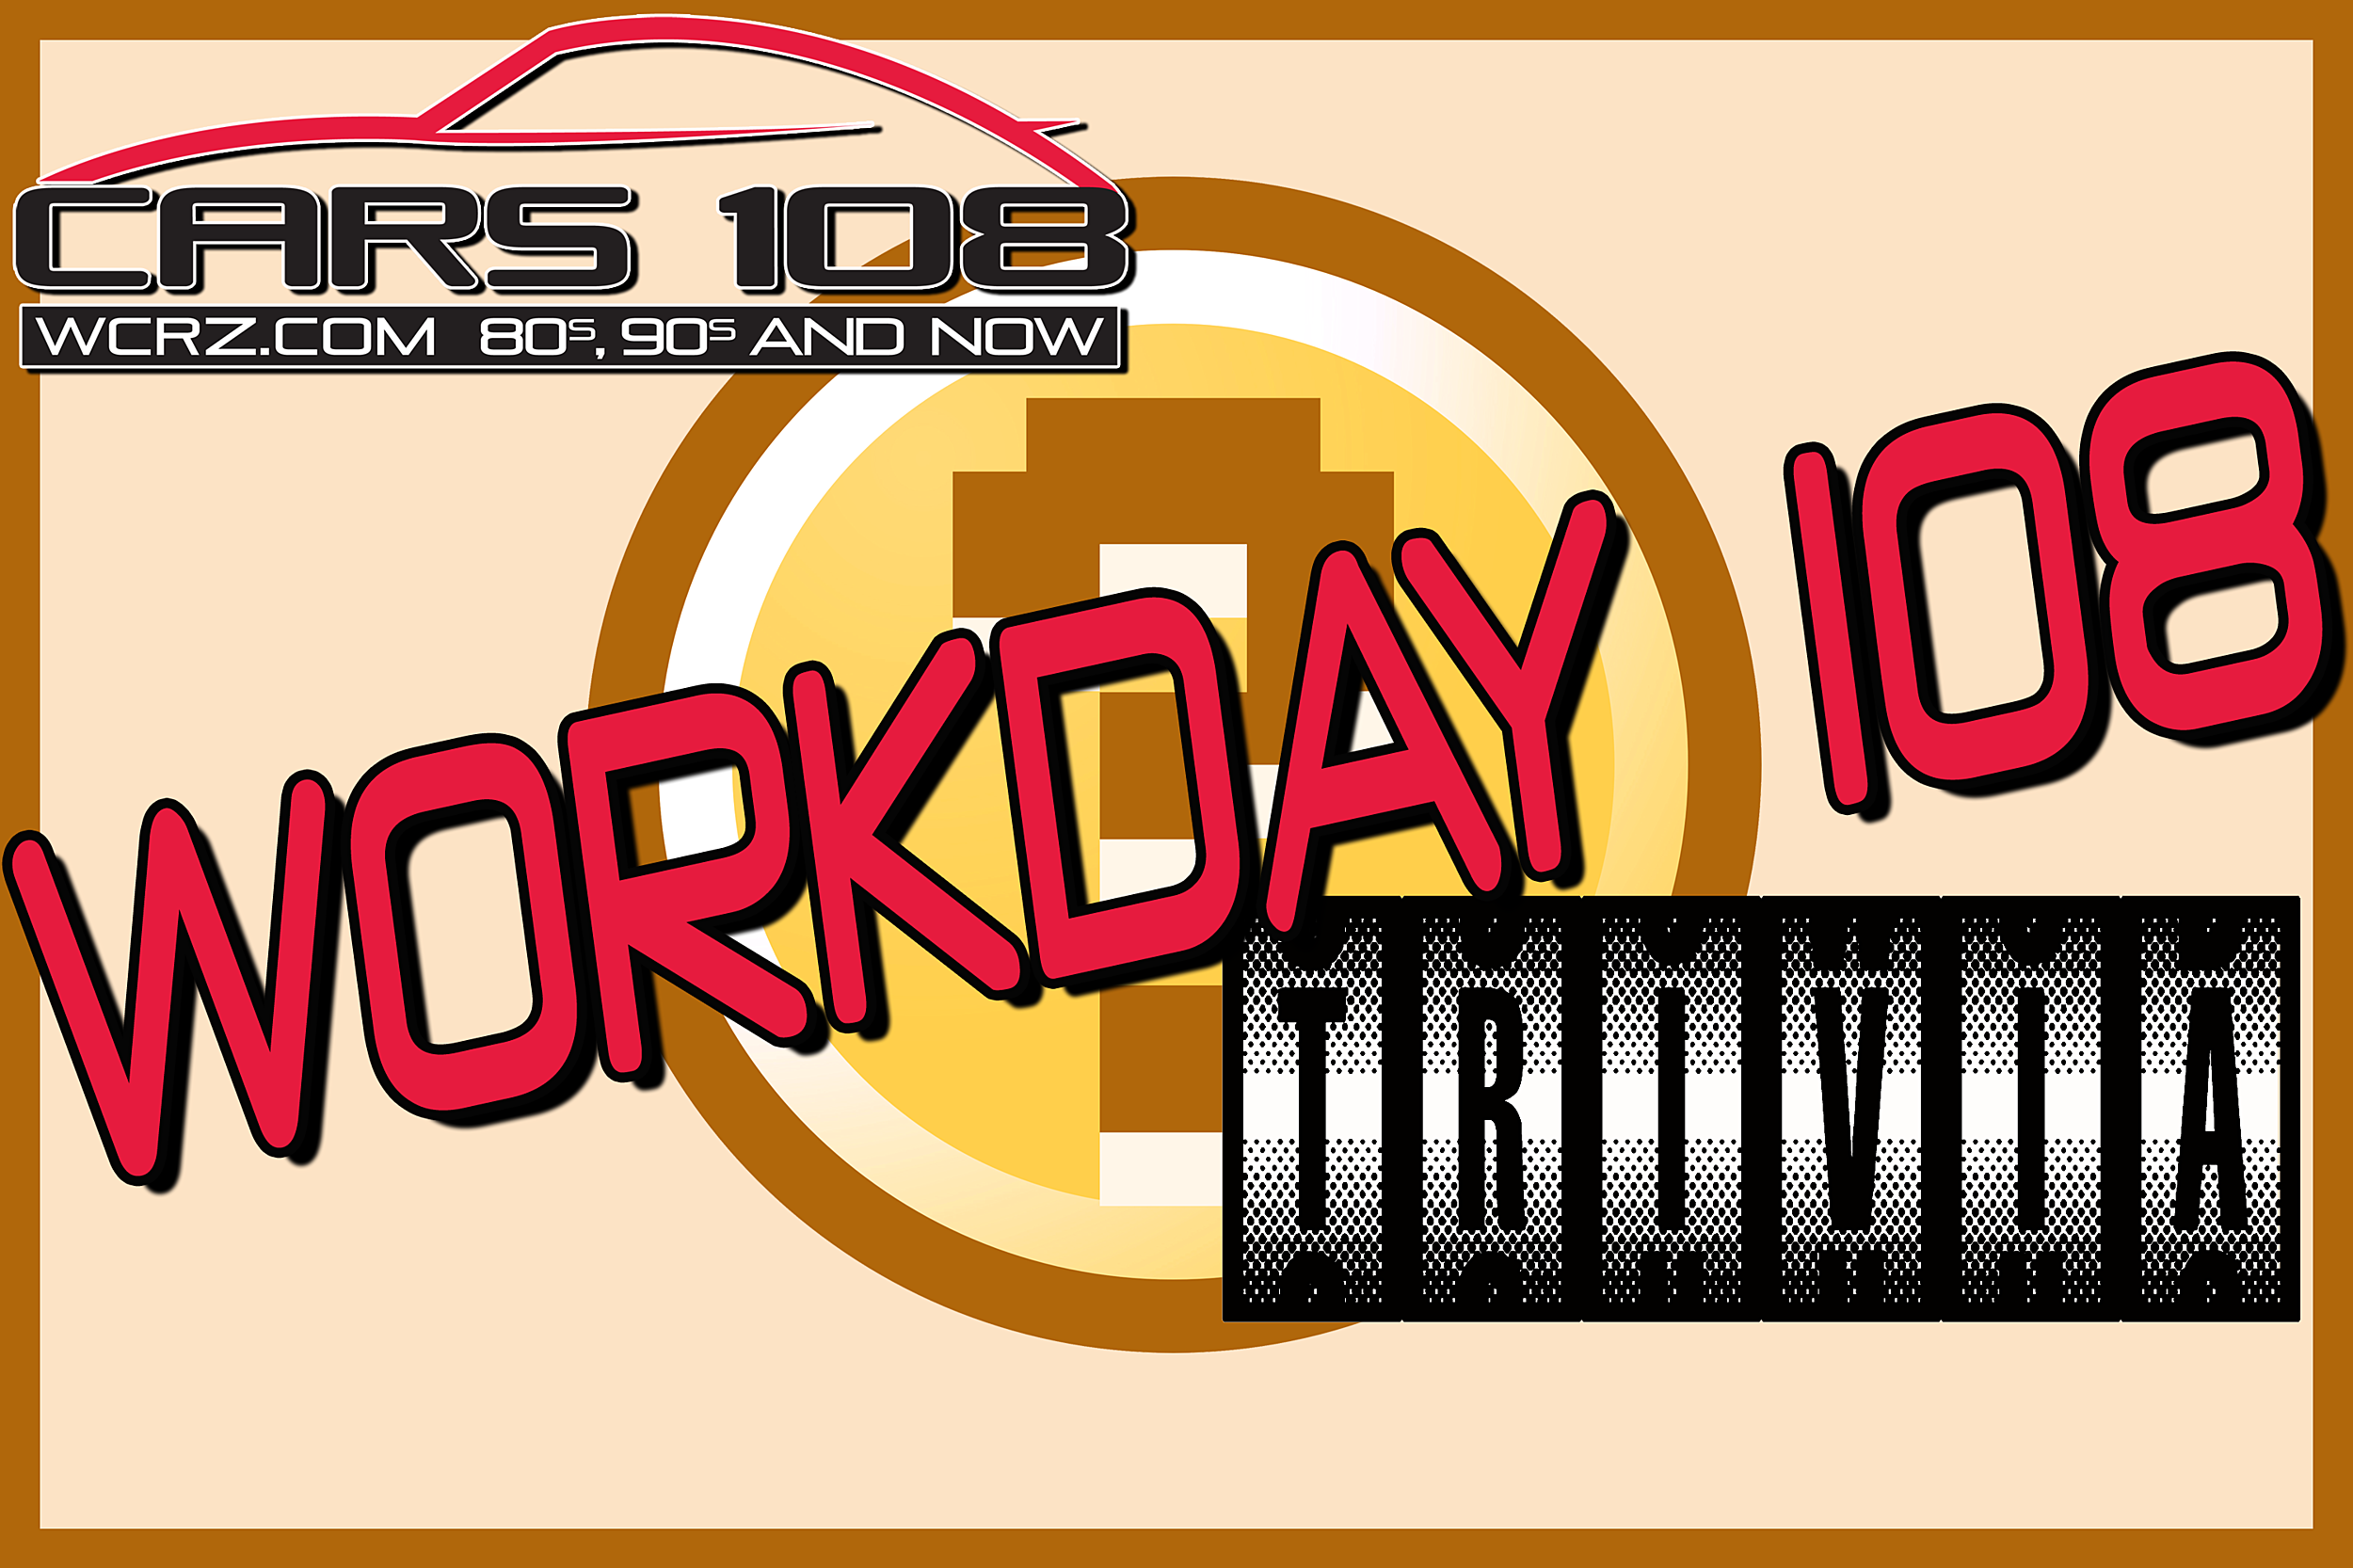 Cars 108 Workday Trivia